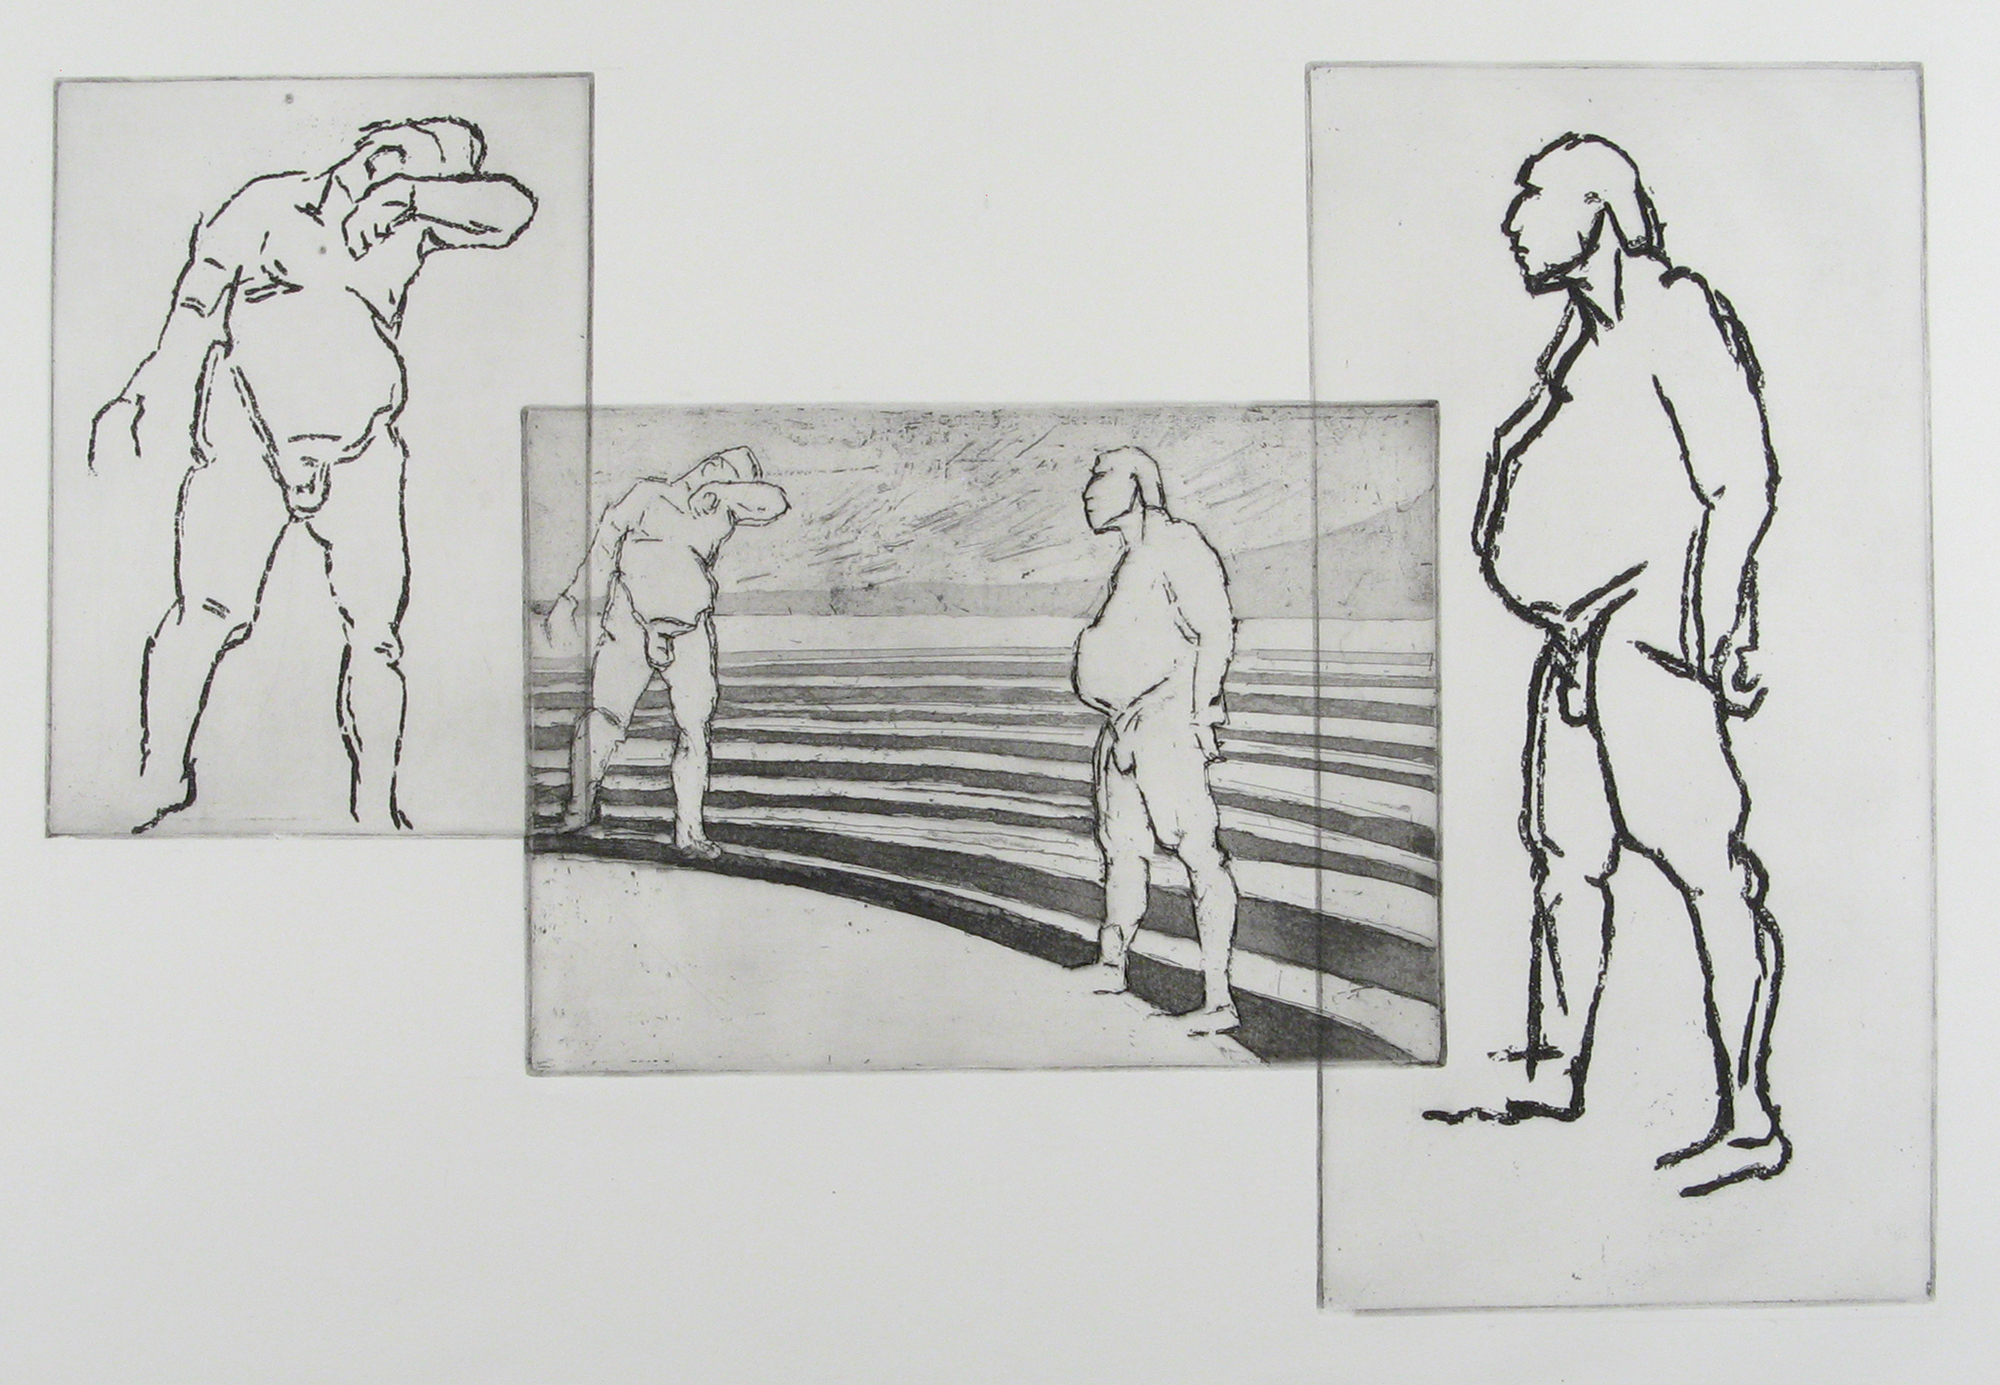 Etchings of two male figures in context